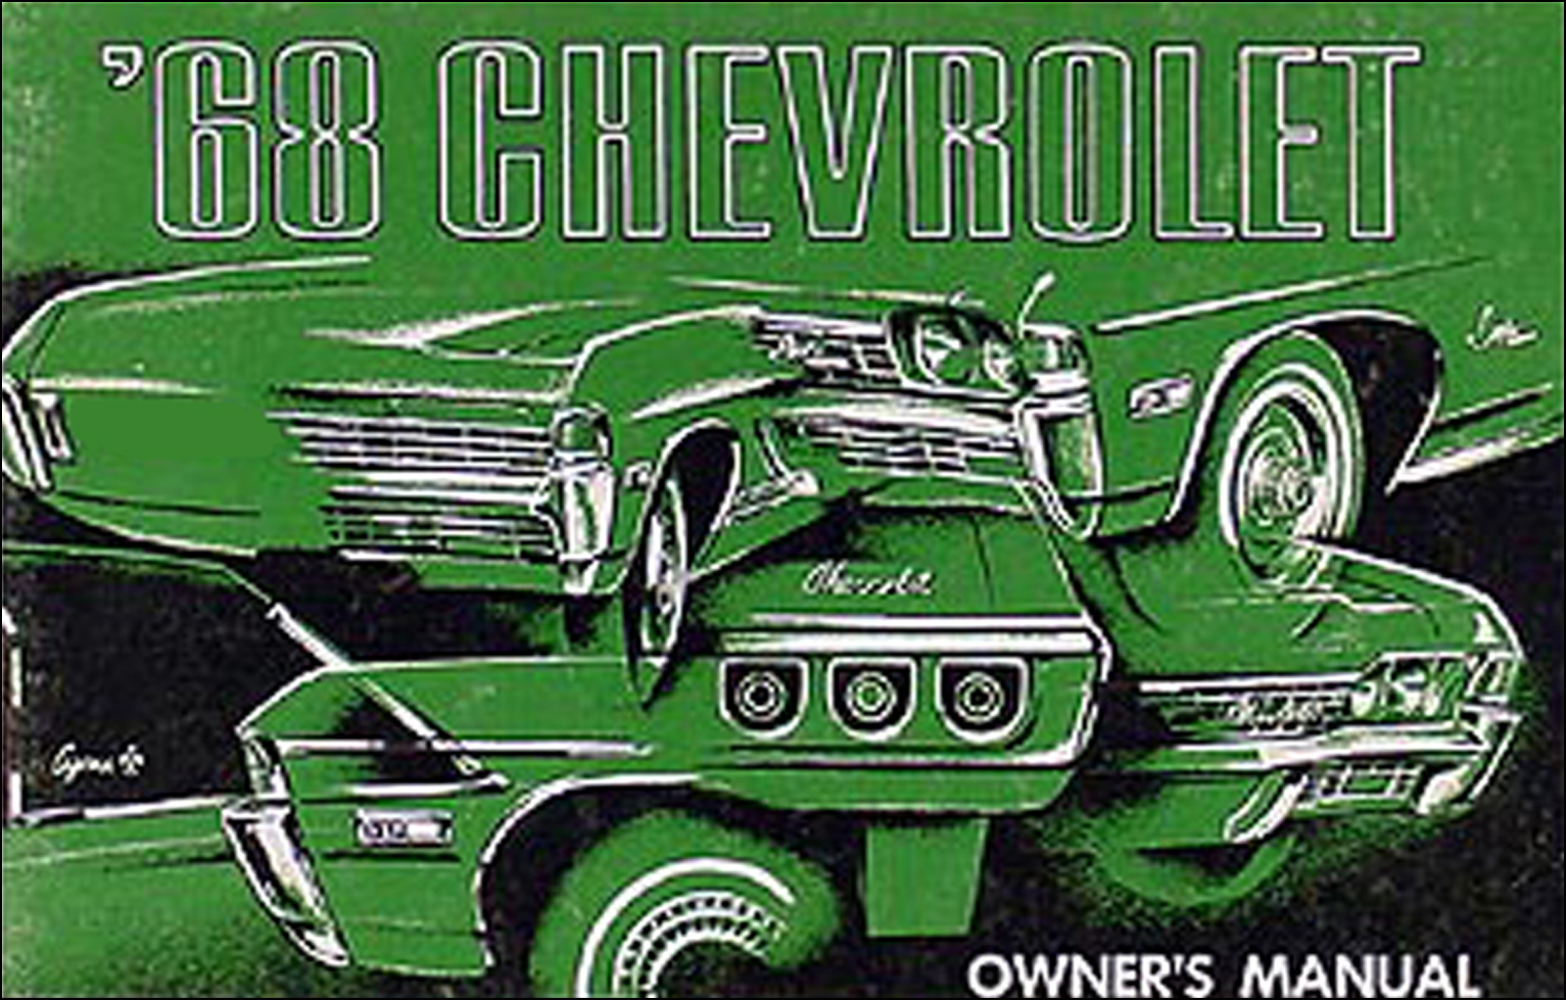 1968 Chevy Owner's Manual Original Impala, SS Caprice Bel Air Biscayne